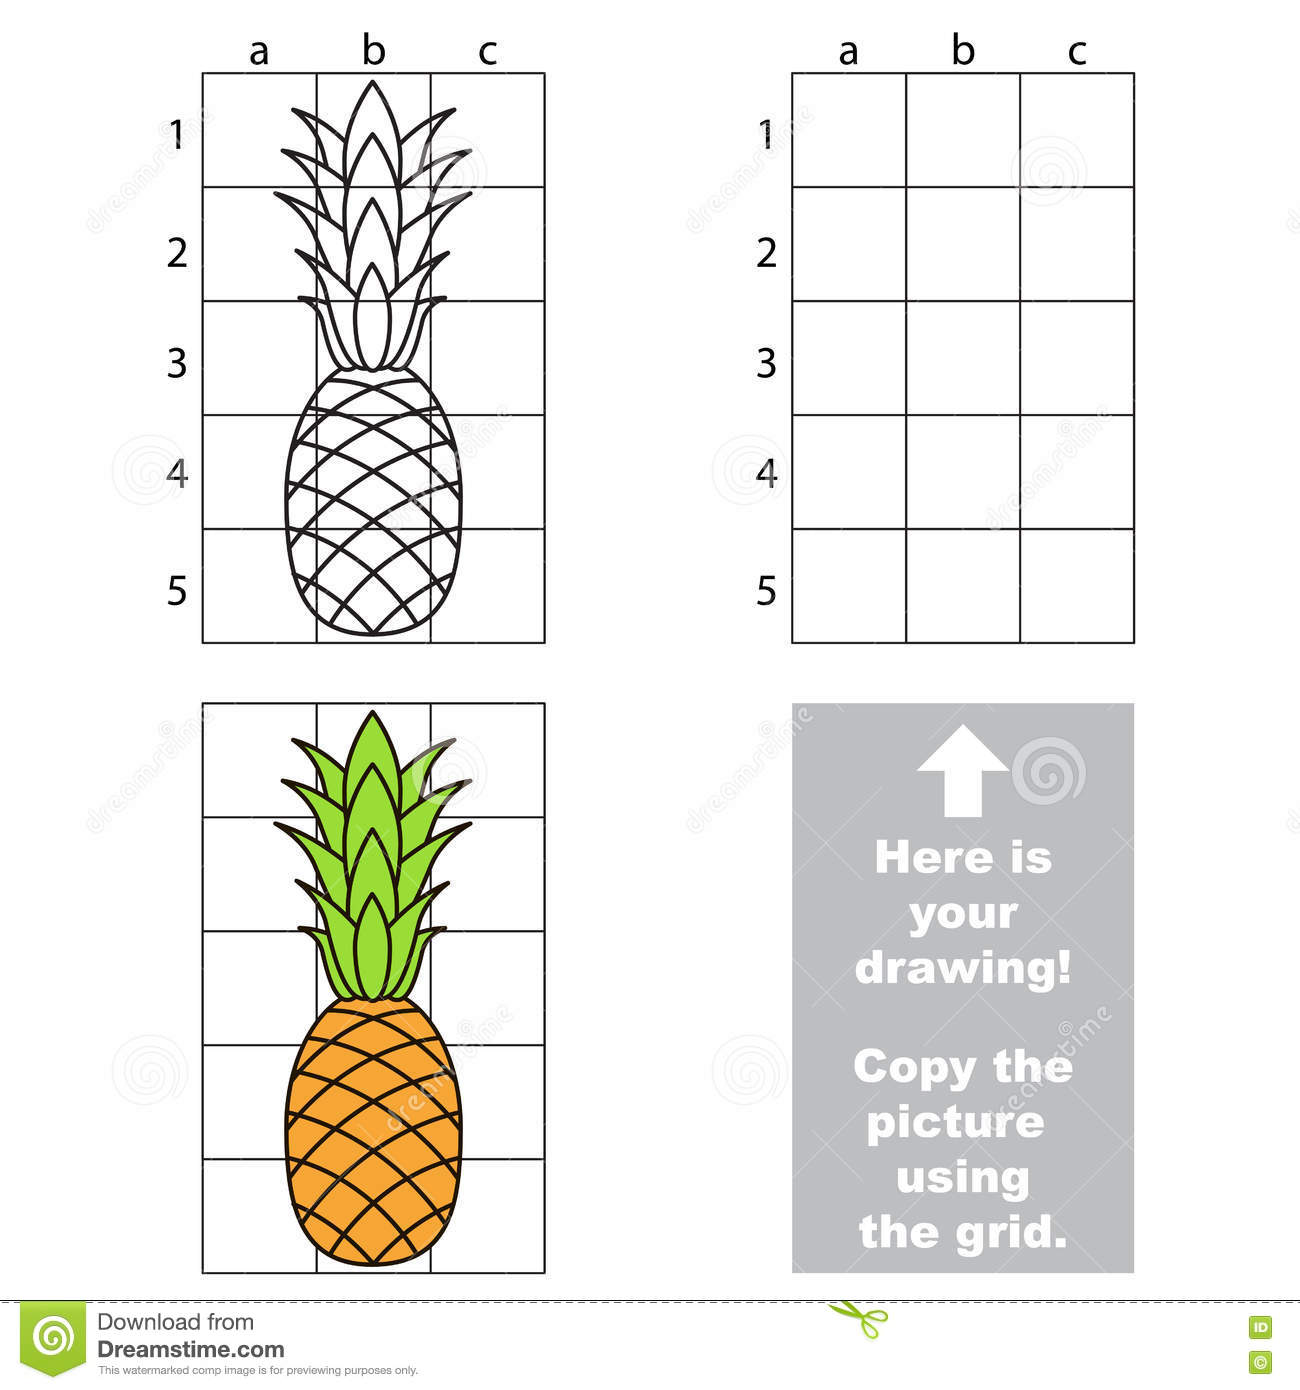 Copy The Image Using Grid Pineapple Stock Vector